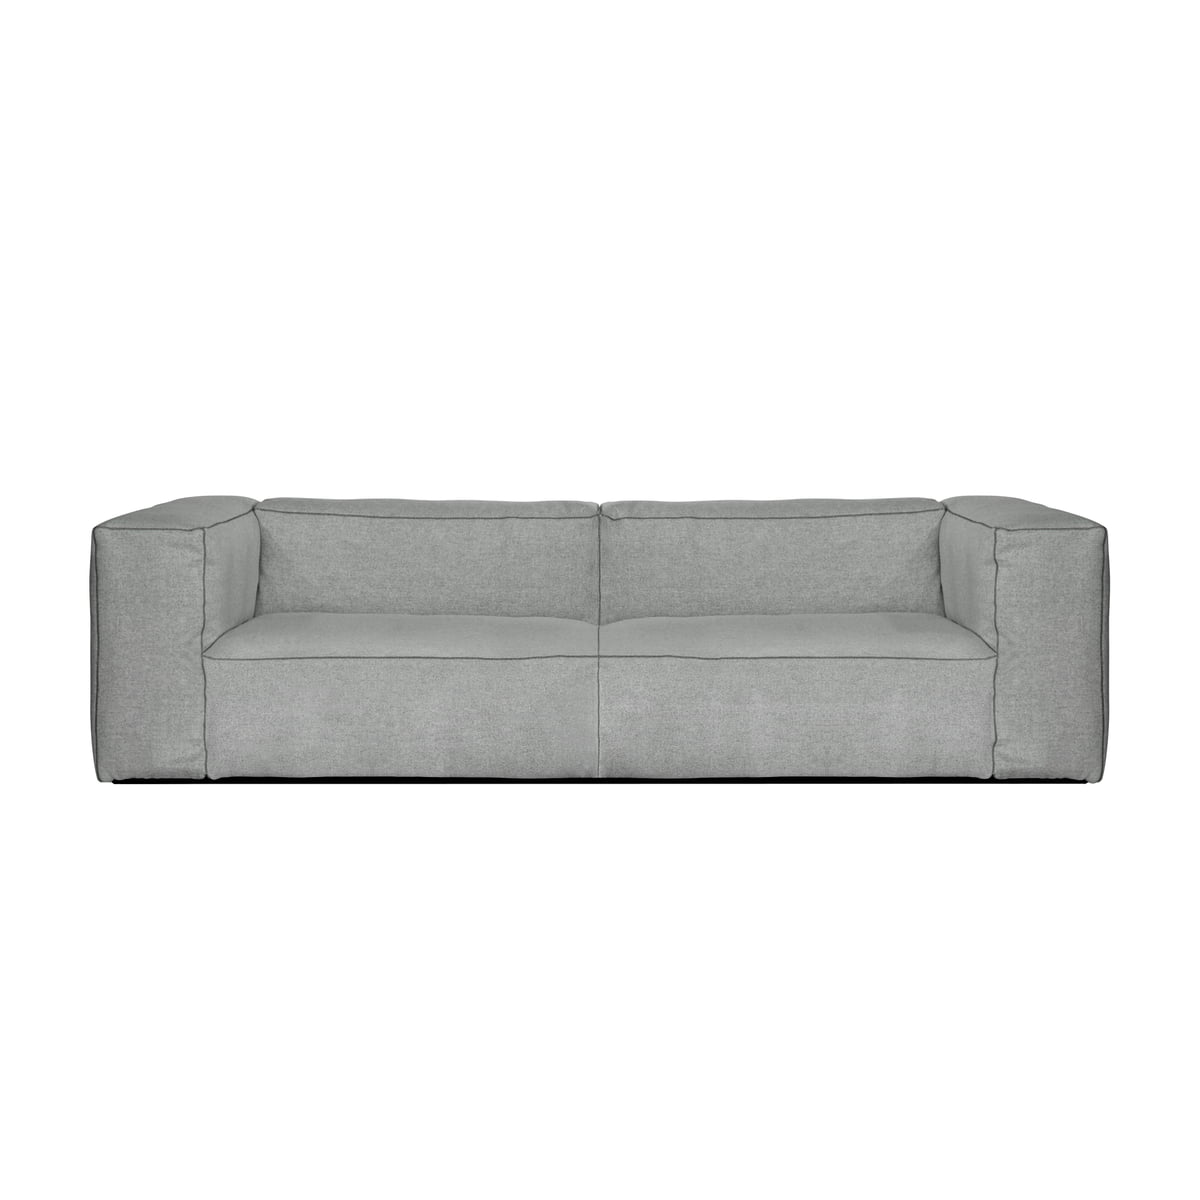 mags soft sofa 2 5 seater by hay in the shop. Black Bedroom Furniture Sets. Home Design Ideas